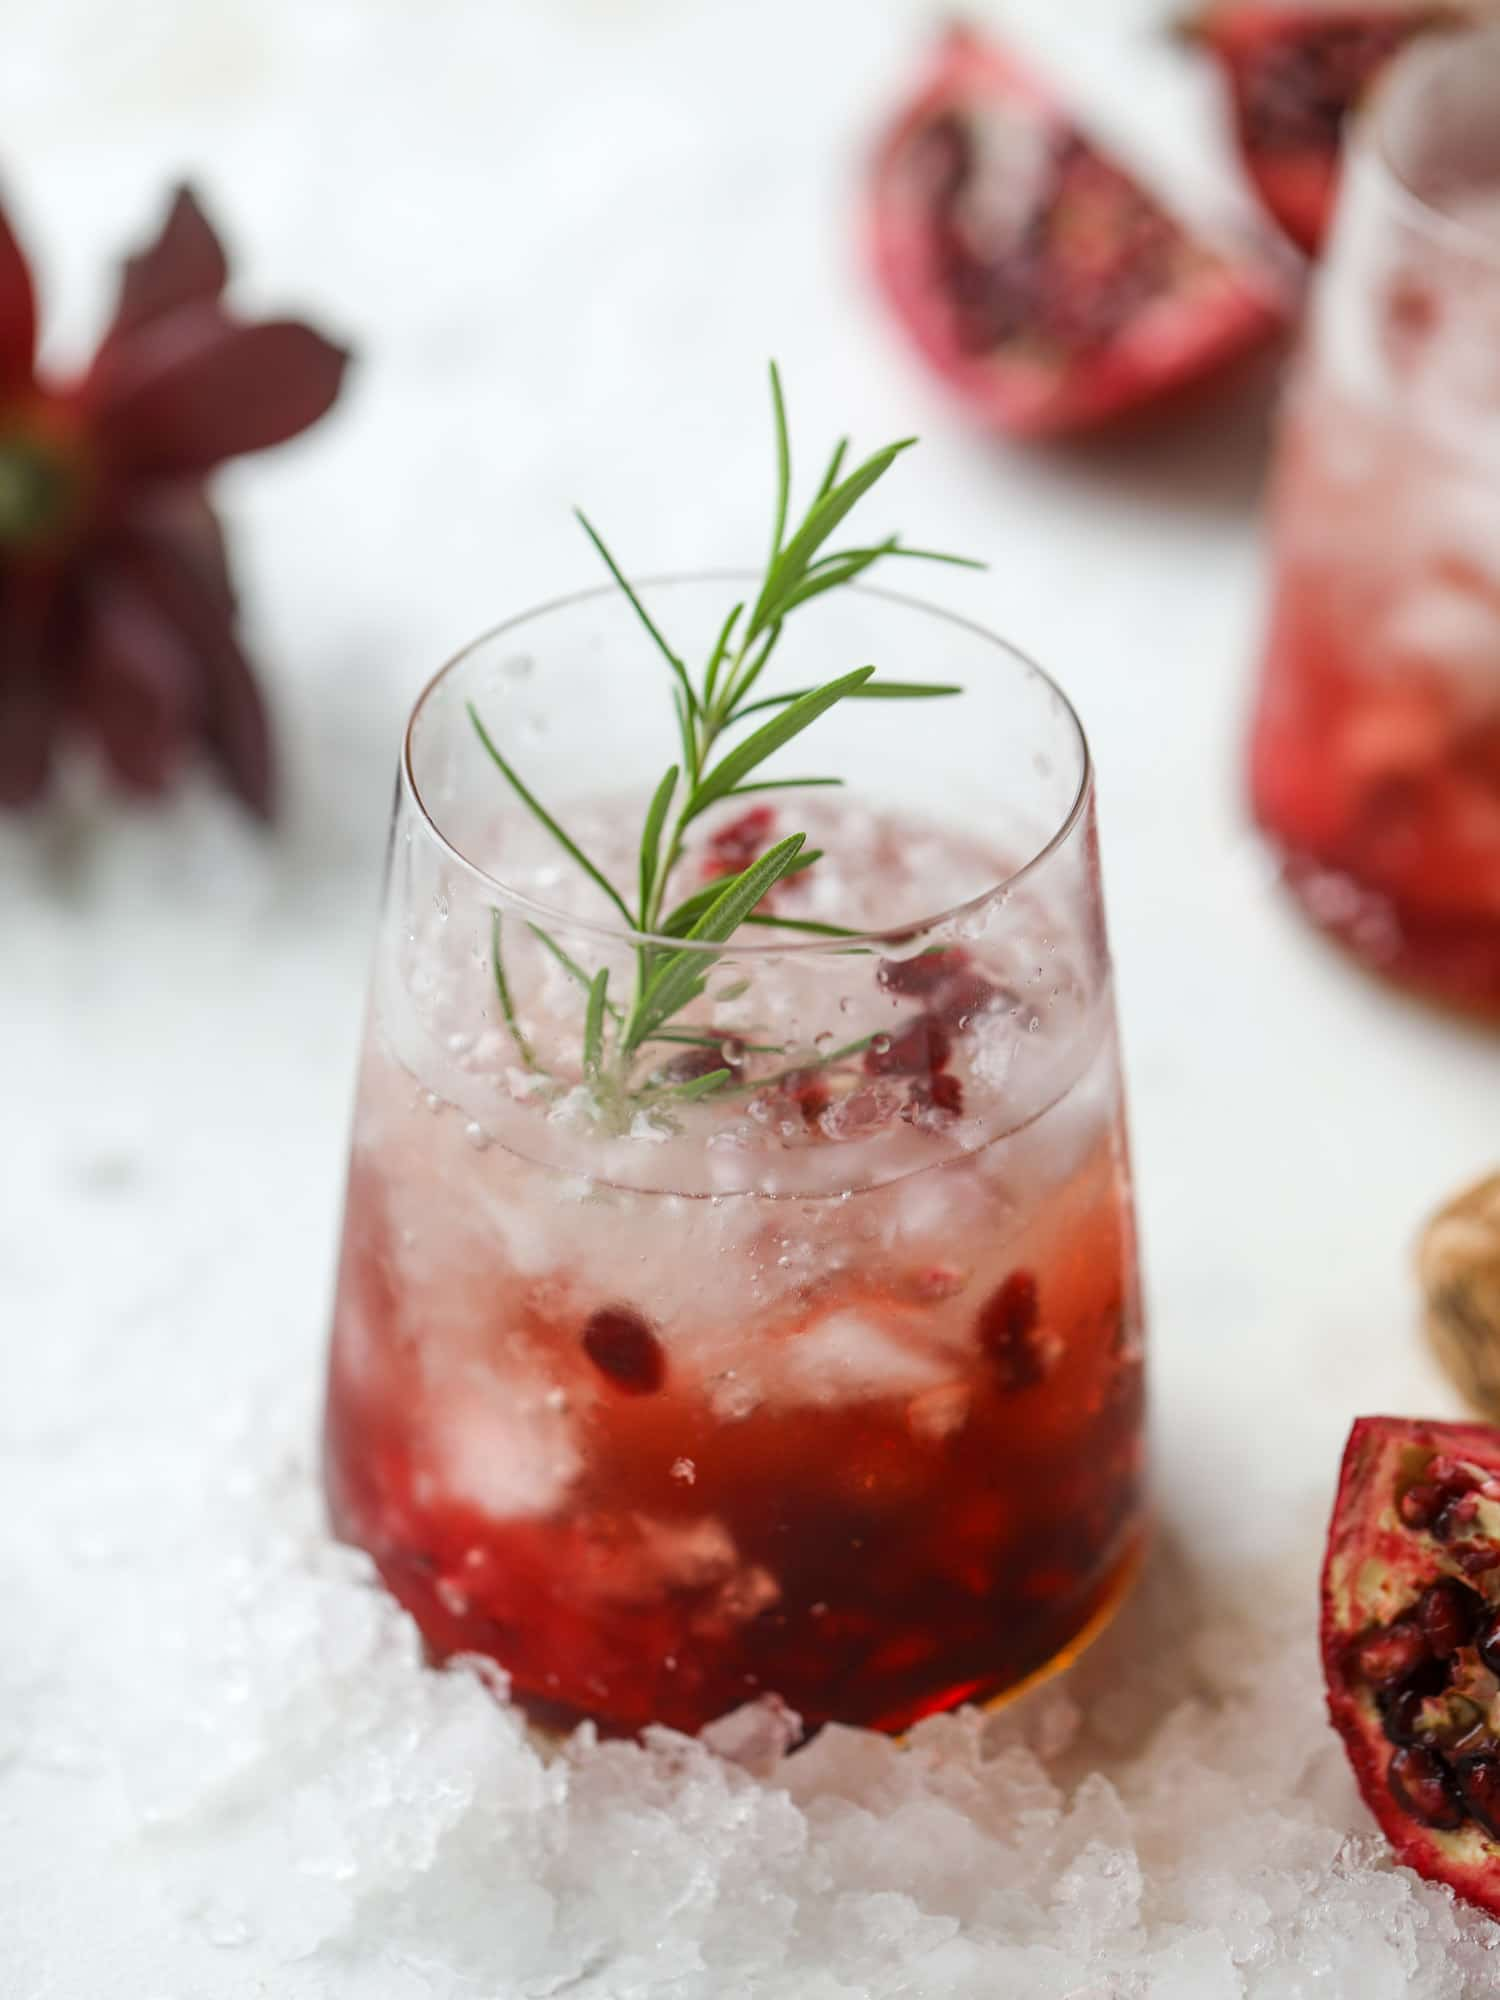 The pomegranate smash cocktail is a great drink for fall, Thanksgiving and the holiday season. Pomegranate juice, vodka and prosecco create a bubbly delicious drink that is garnished with pomegranate arils and rosemary. So festive! I howsweeteats.com #pomegranate #smash